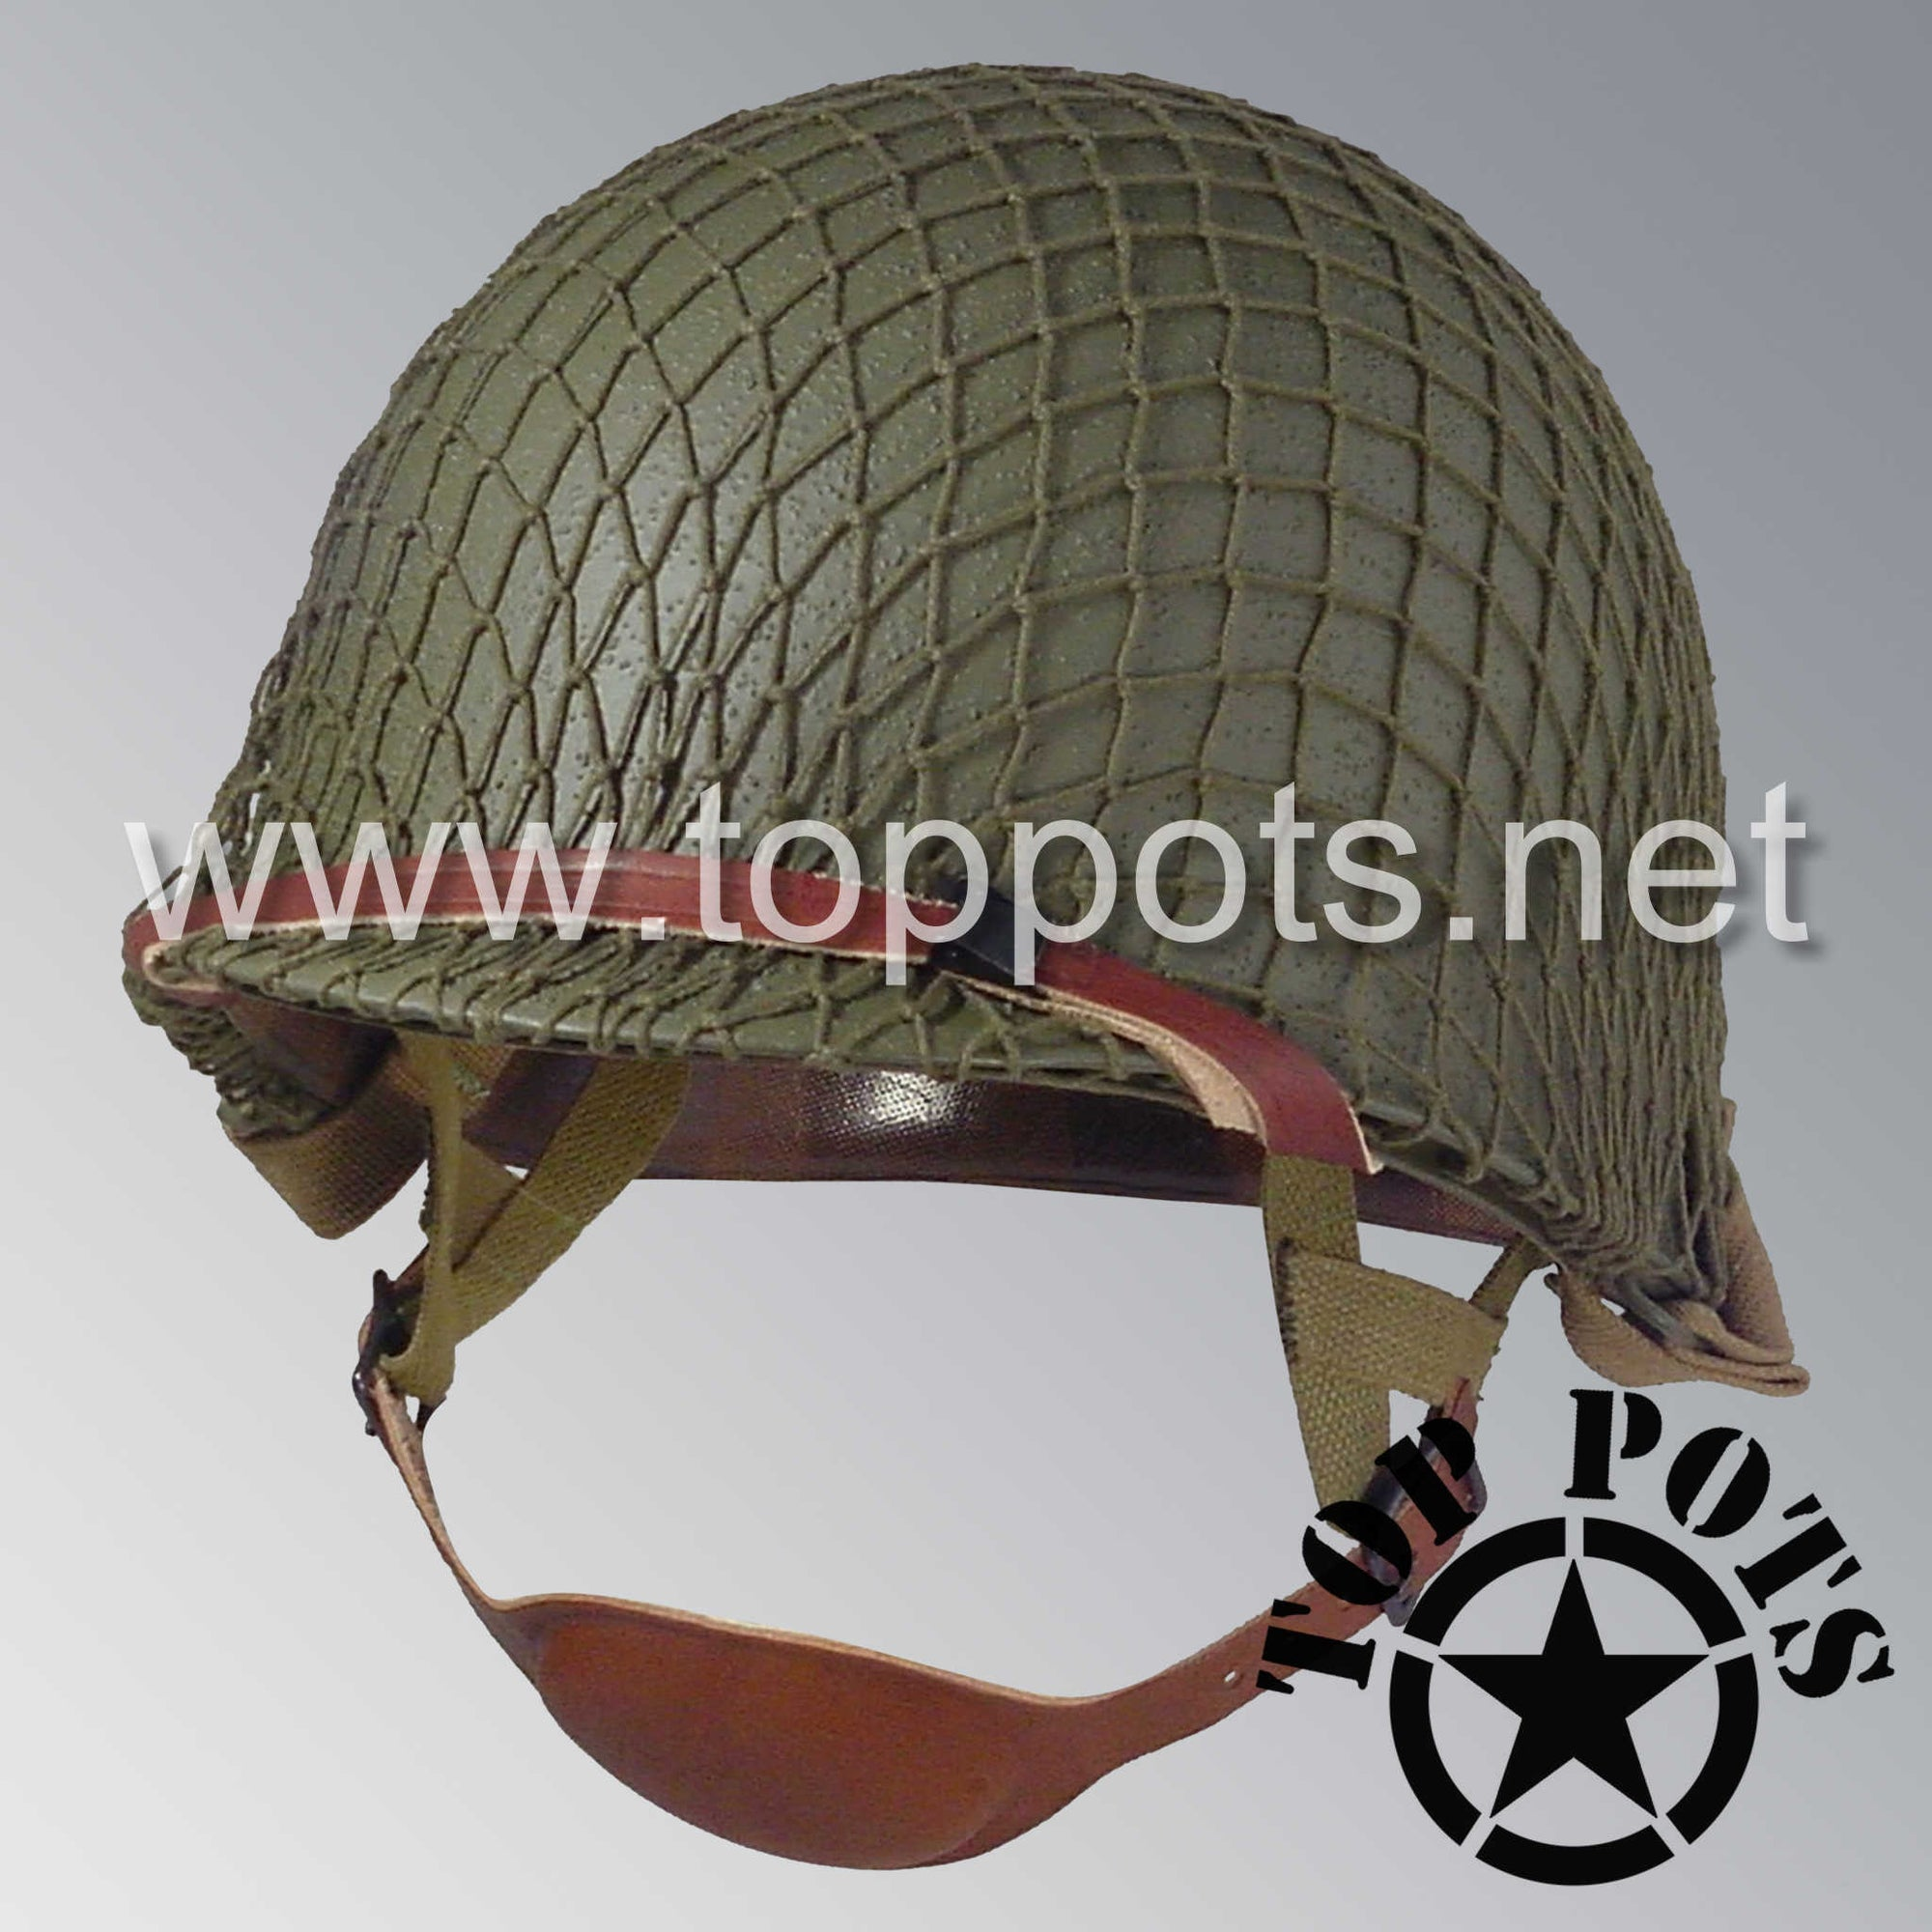 Image 1 of WWII US Army Restored Original M1C Paratrooper Airborne Helmet Swivel Bale Shell and Liner with OD 7 Net